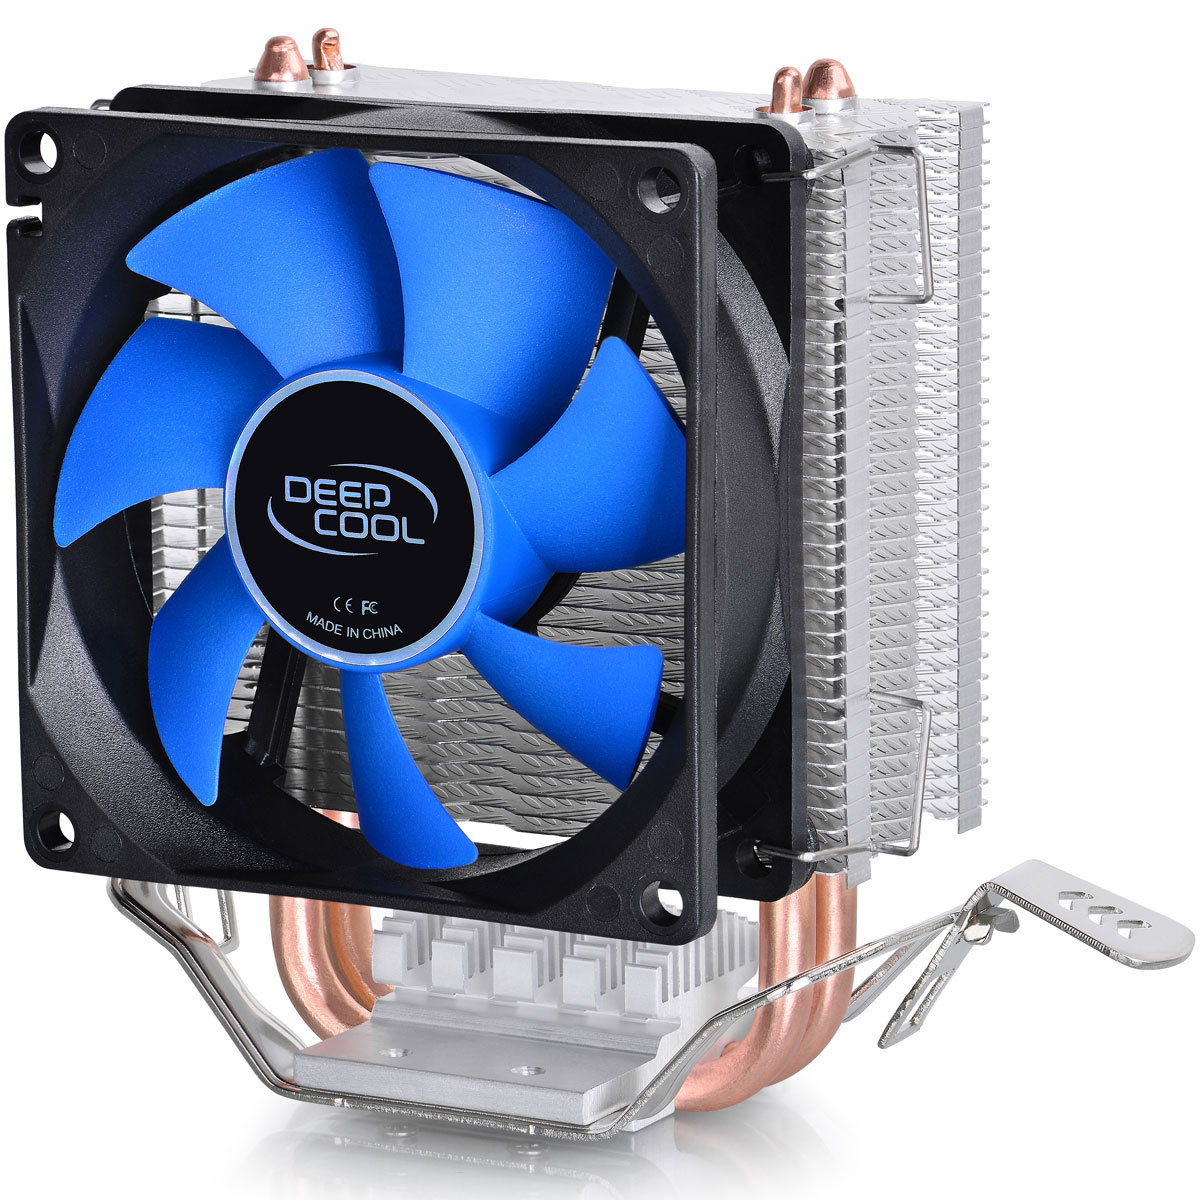 все цены на Deepcool Ice Edge Mini FS V2.0 кулер компьютерный